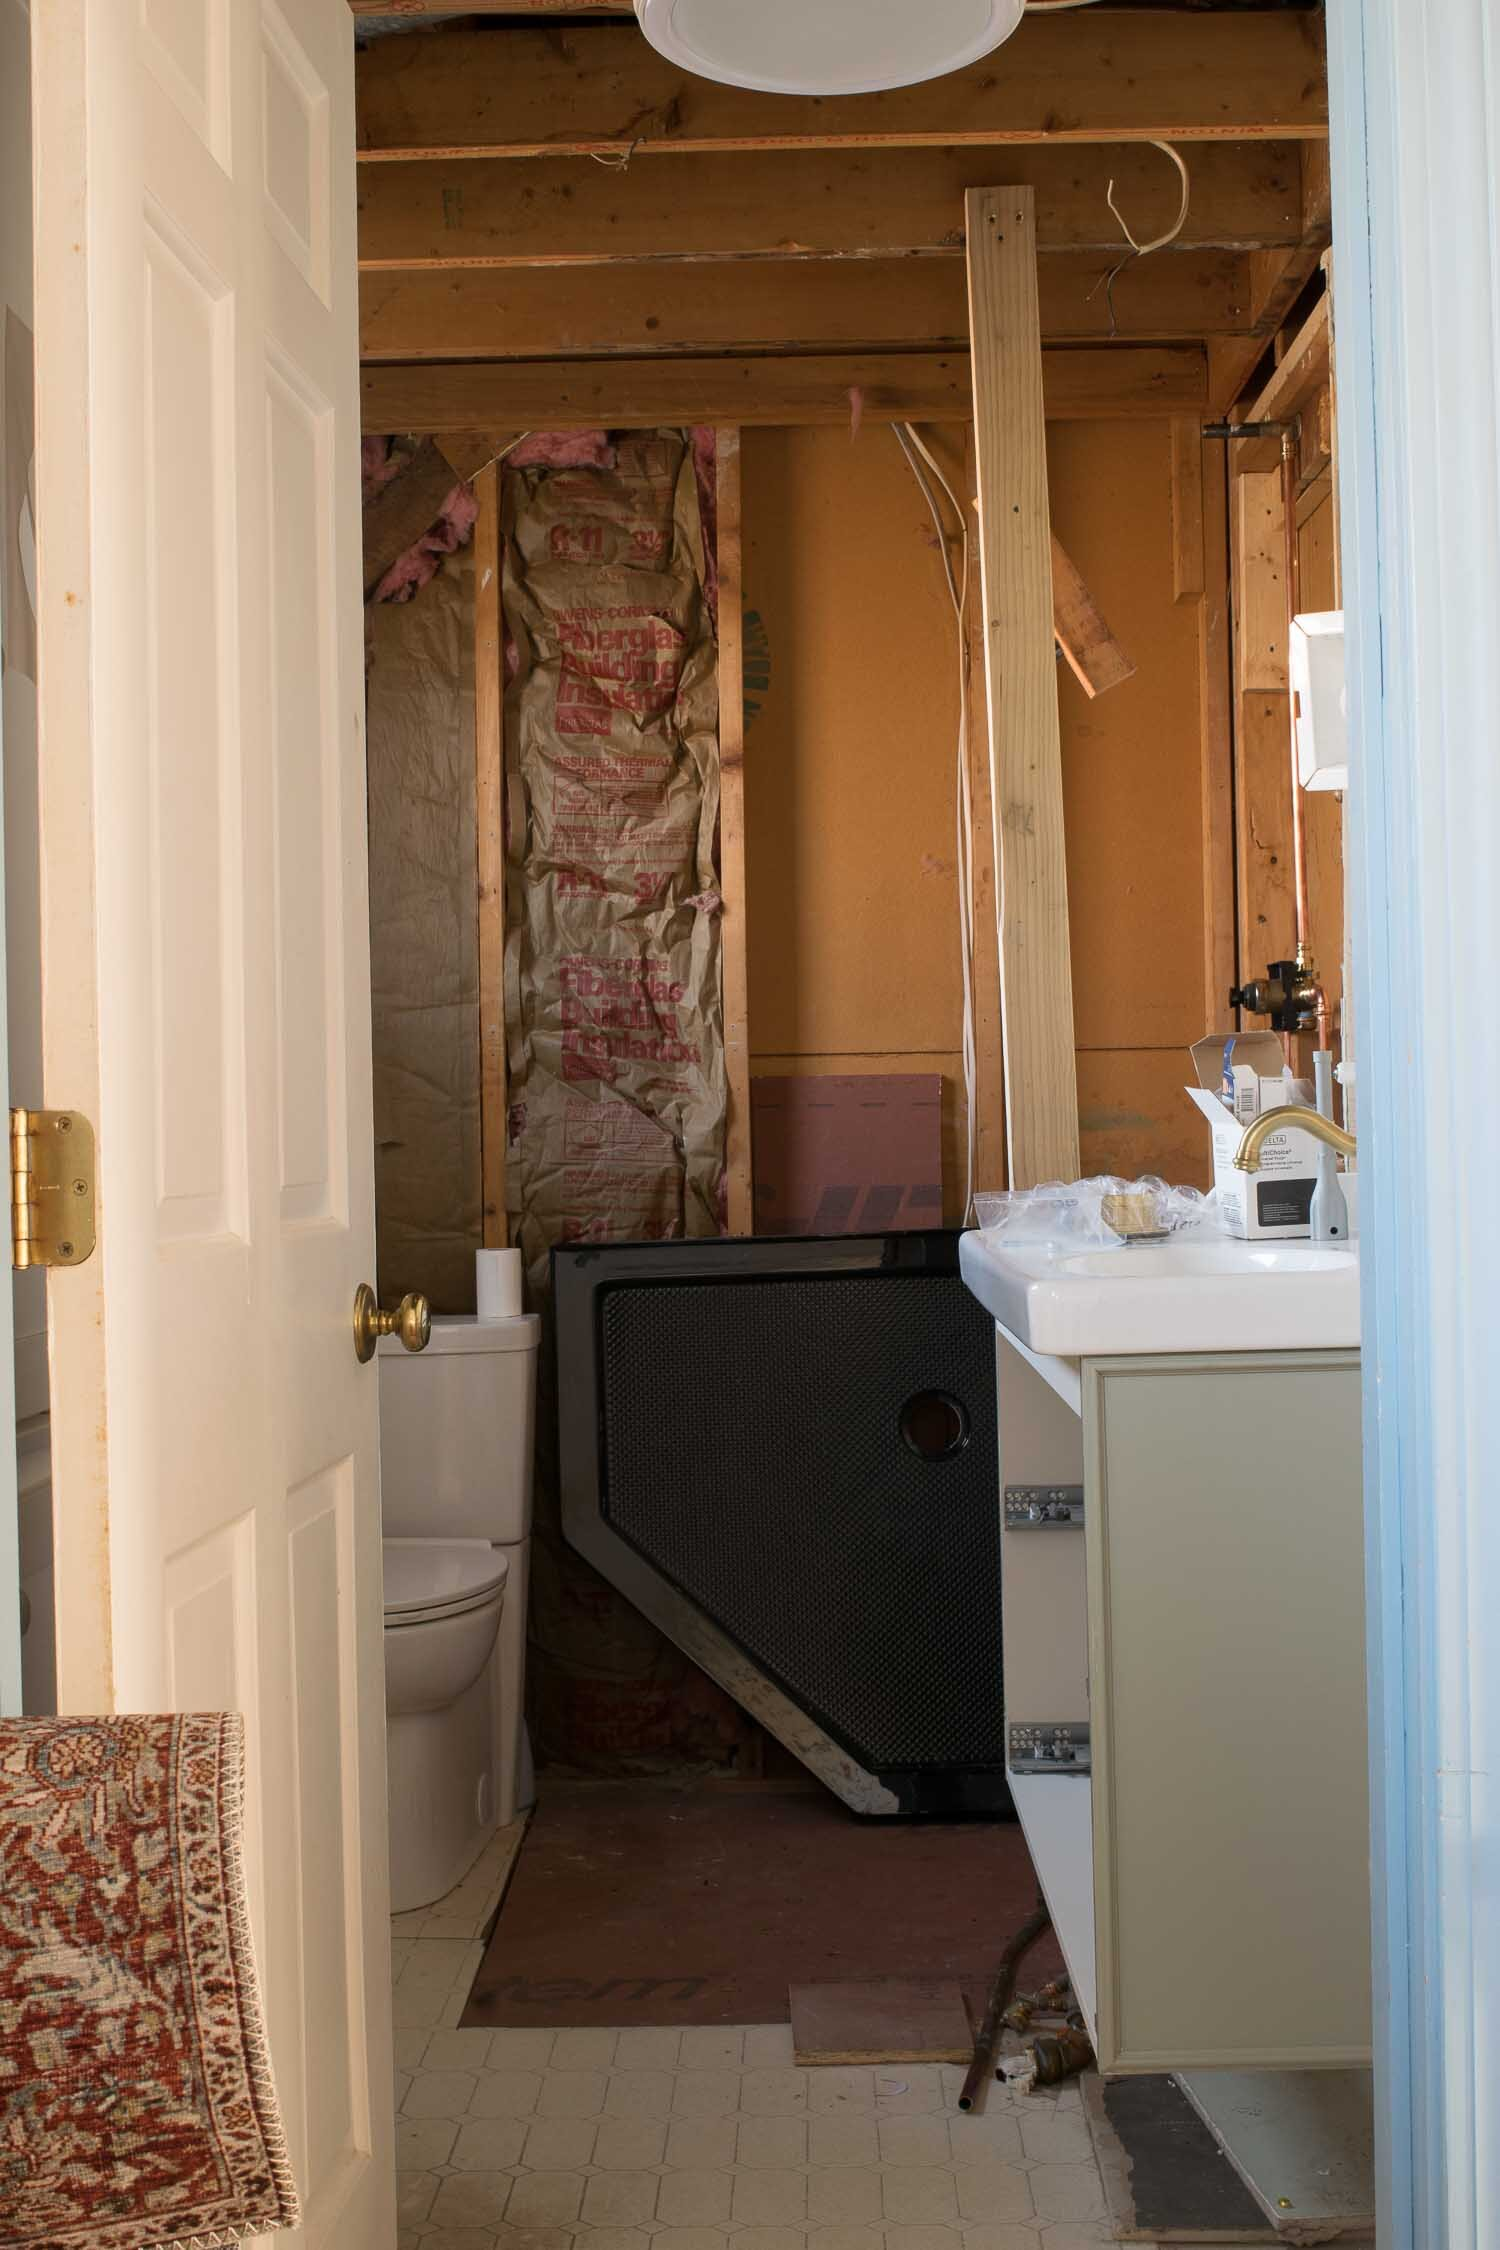 Redesigning a Small Corner Shower (+ other bathroom reno updates) | Remodel by This Giant Life-4538.jpg